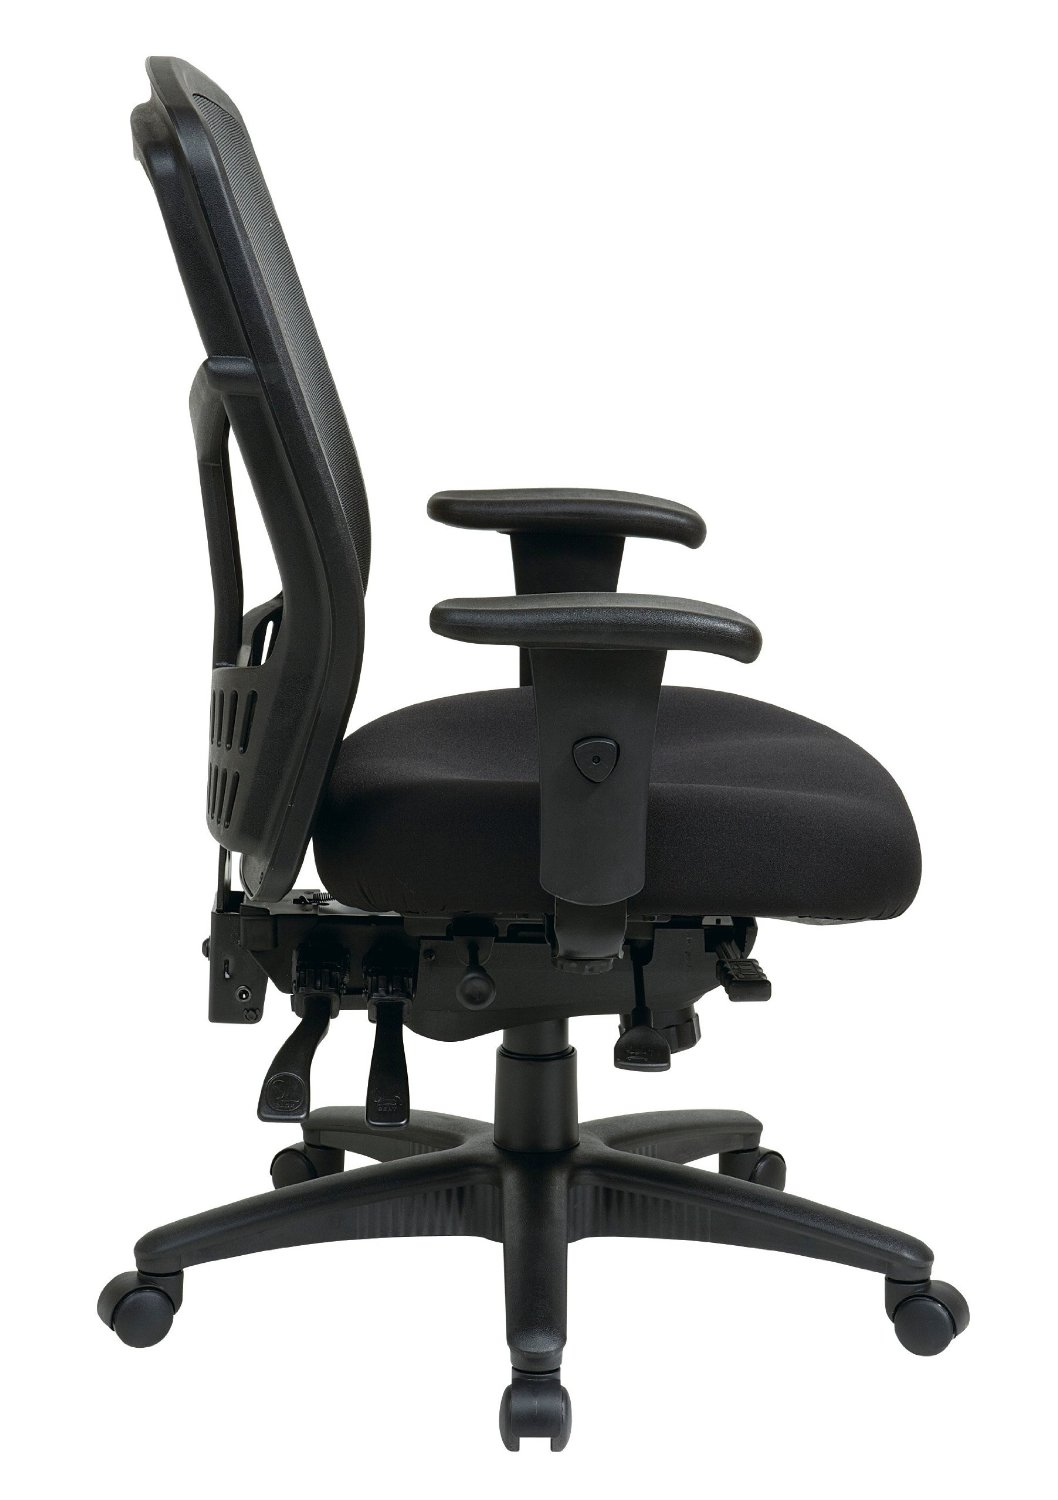 ofm posture task chair high back outdoor office with pivoting armrests humanscale liberty